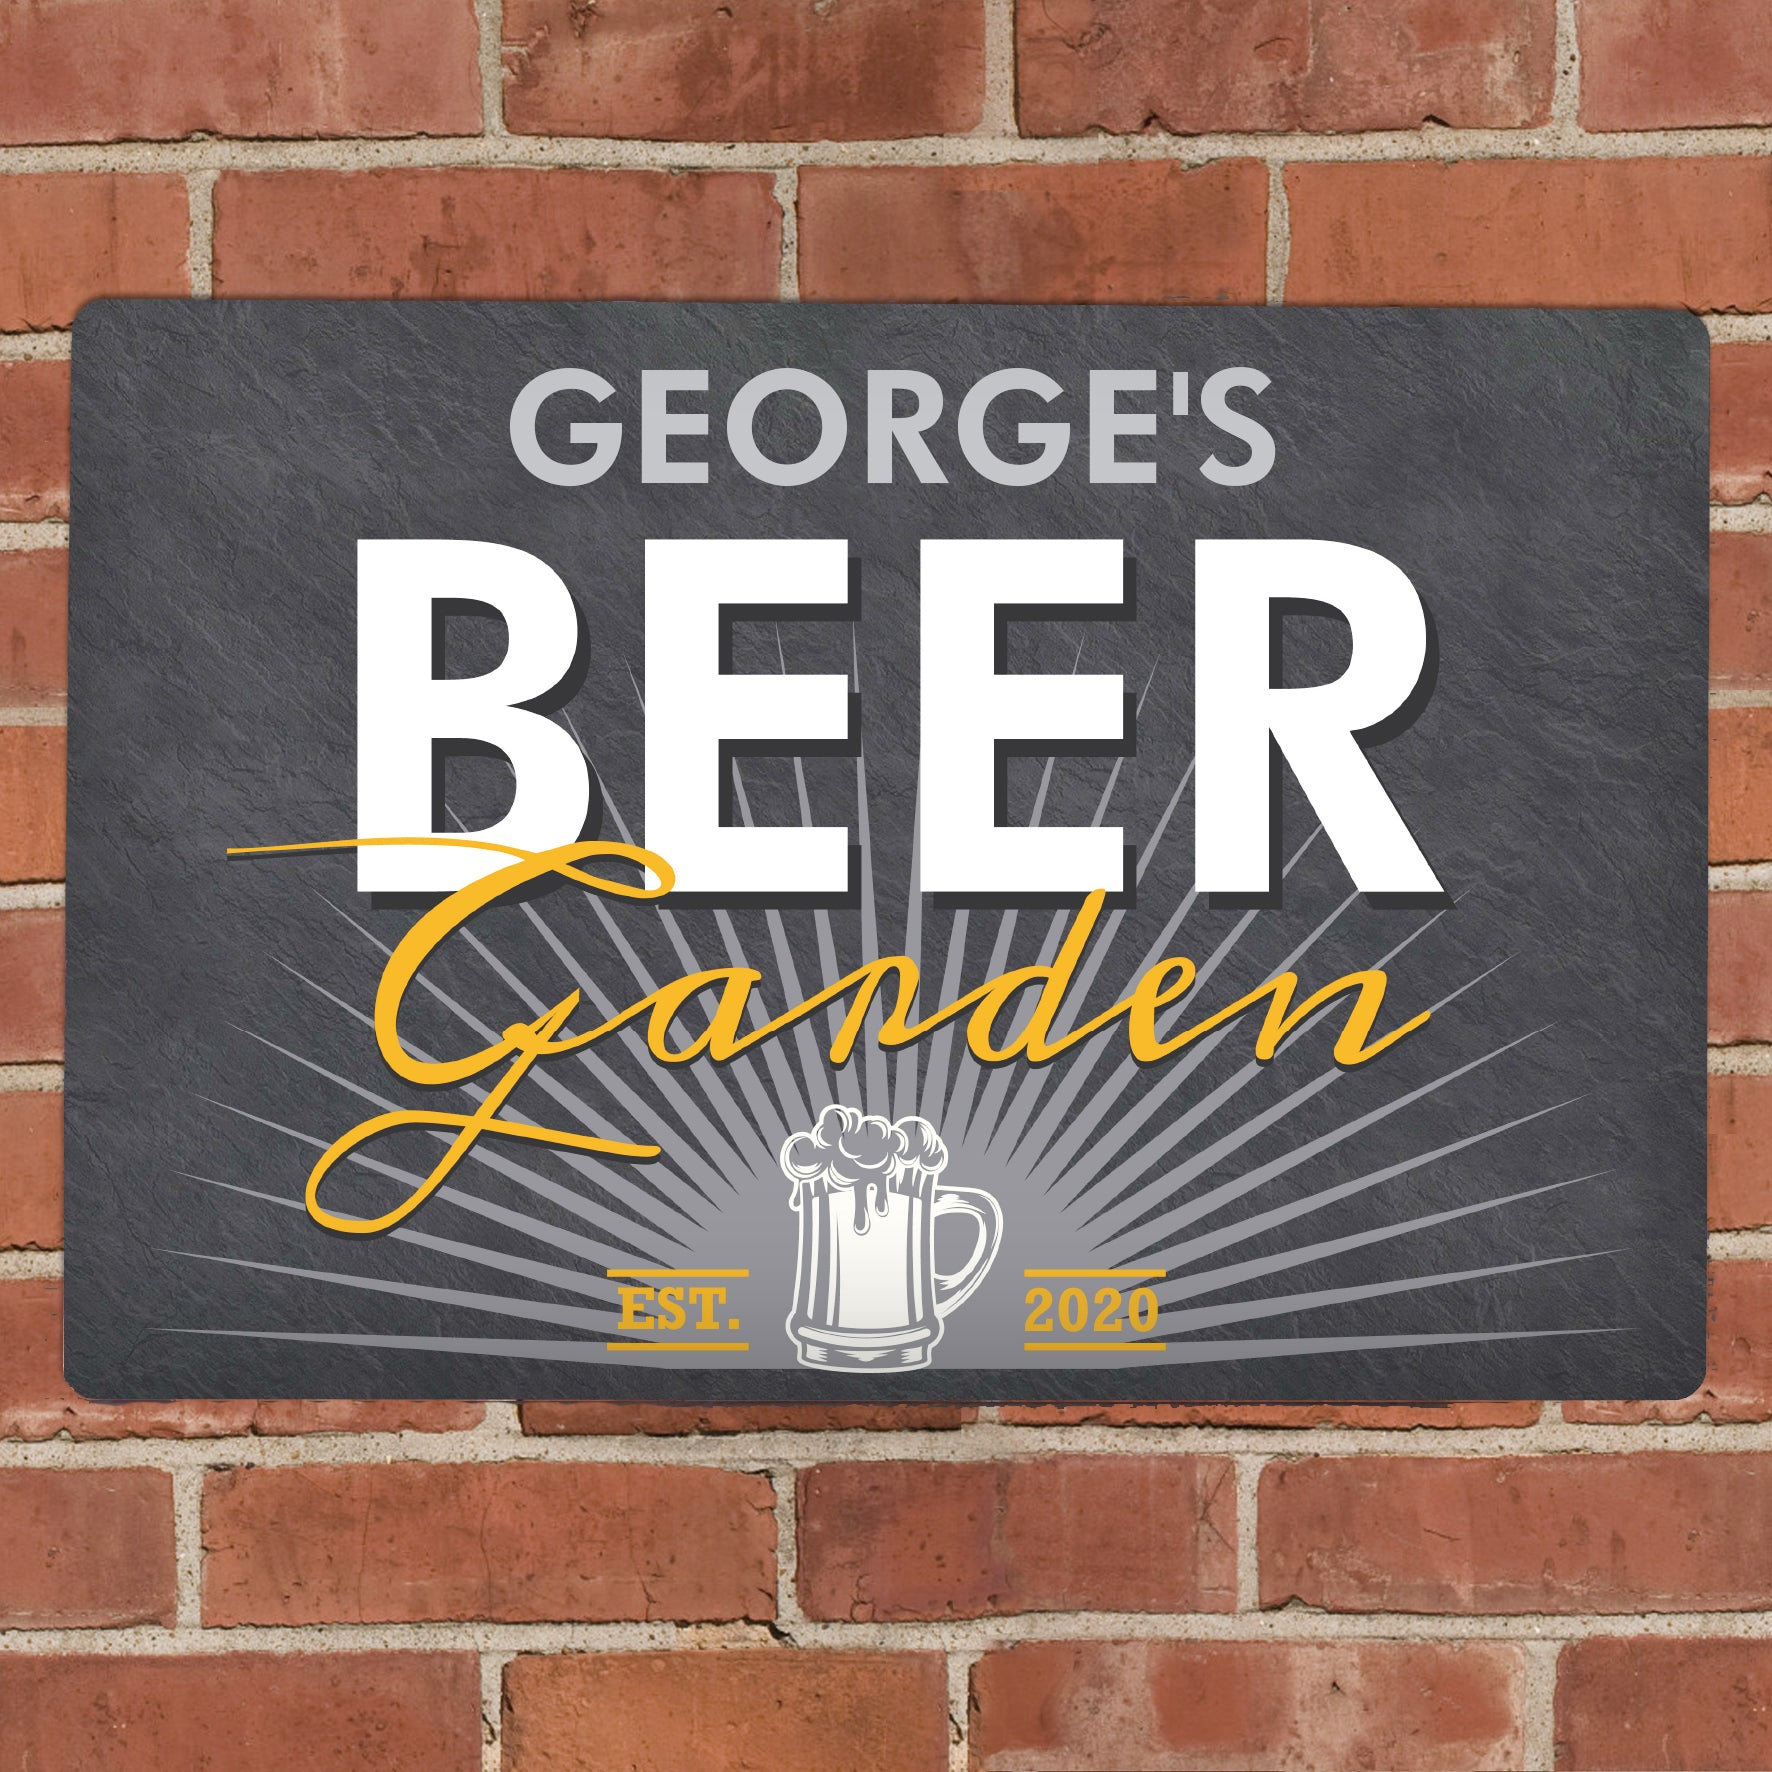 Personalised Beer Garden Metal Sign, Business & Industrial by Low Cost Gifts